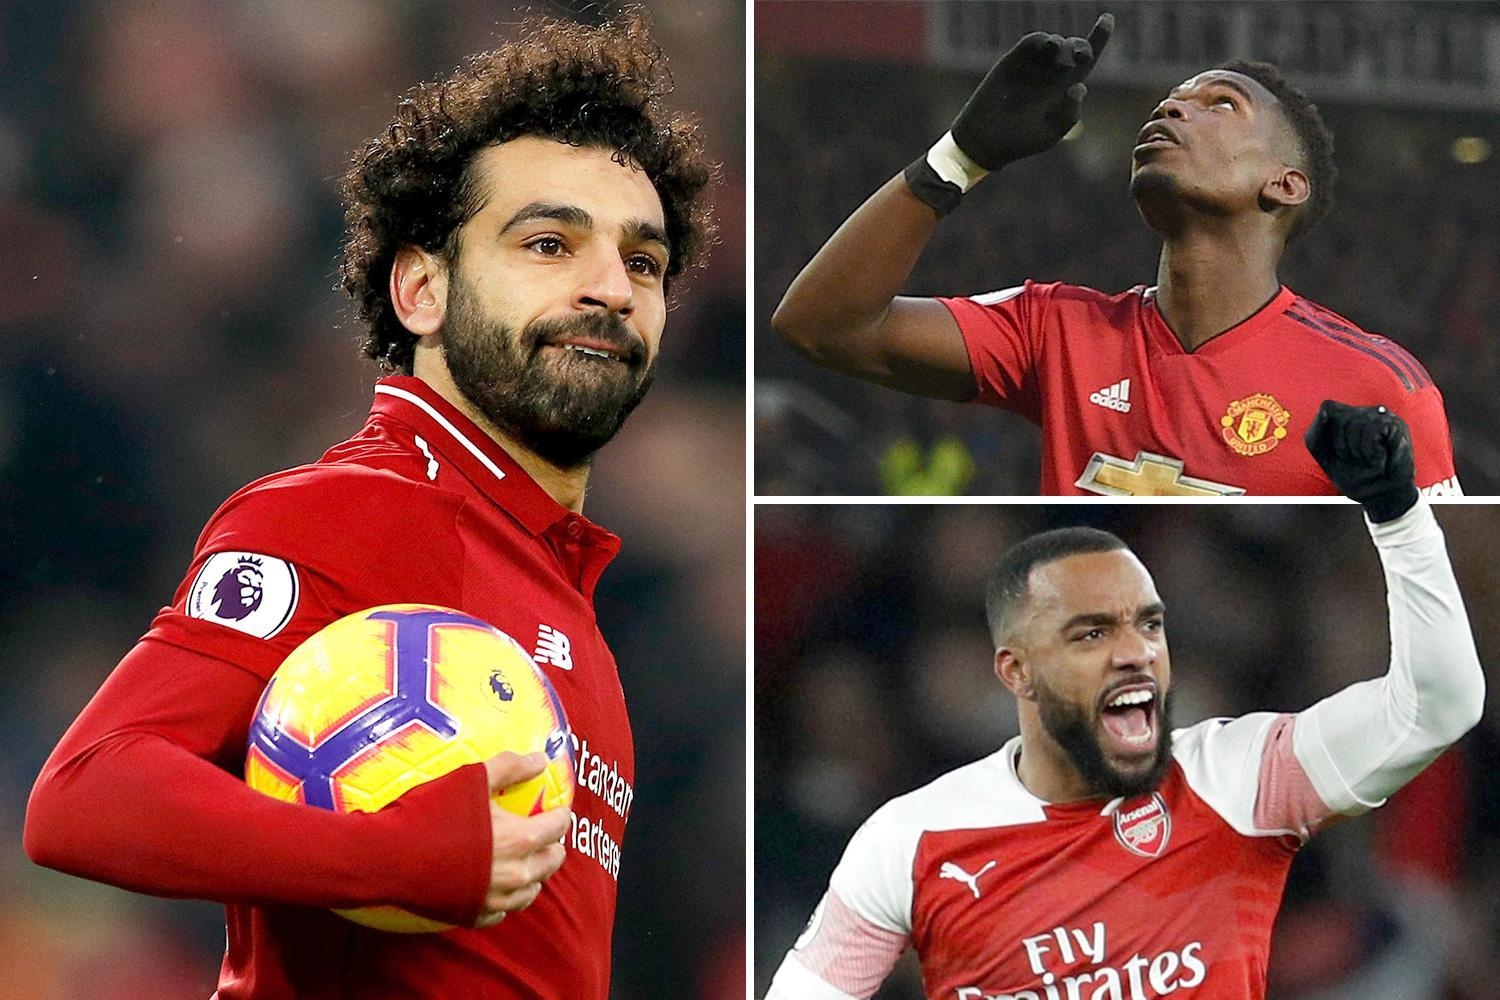 Premier League highlights: Liverpool edge Palace thriller while Arsenal see off Chelsea and Man Utd win again